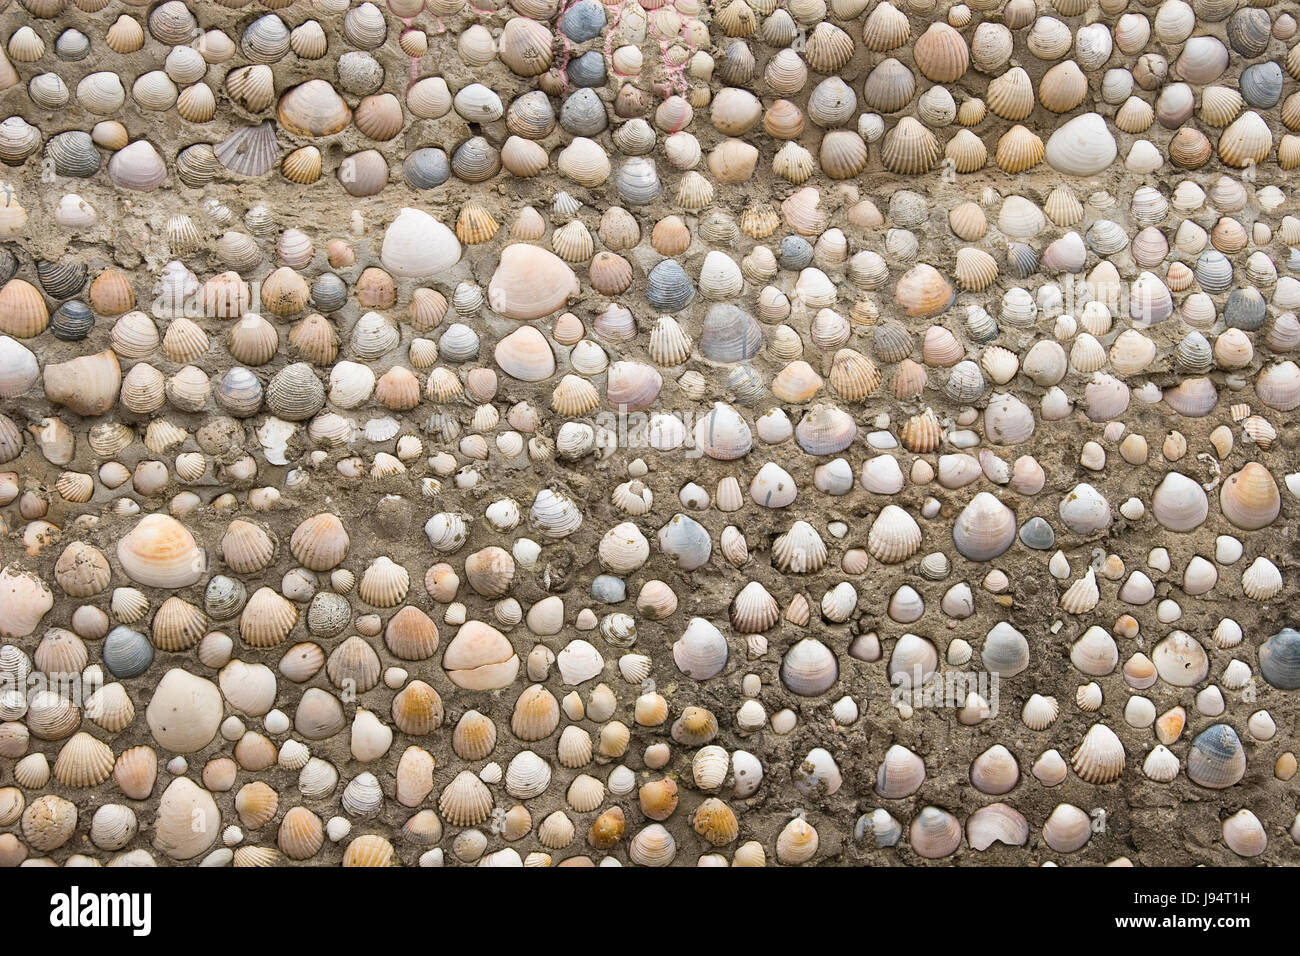 arrangement, object, colour, stone, shell, look, glancing, see, view, looking, Stock Photo